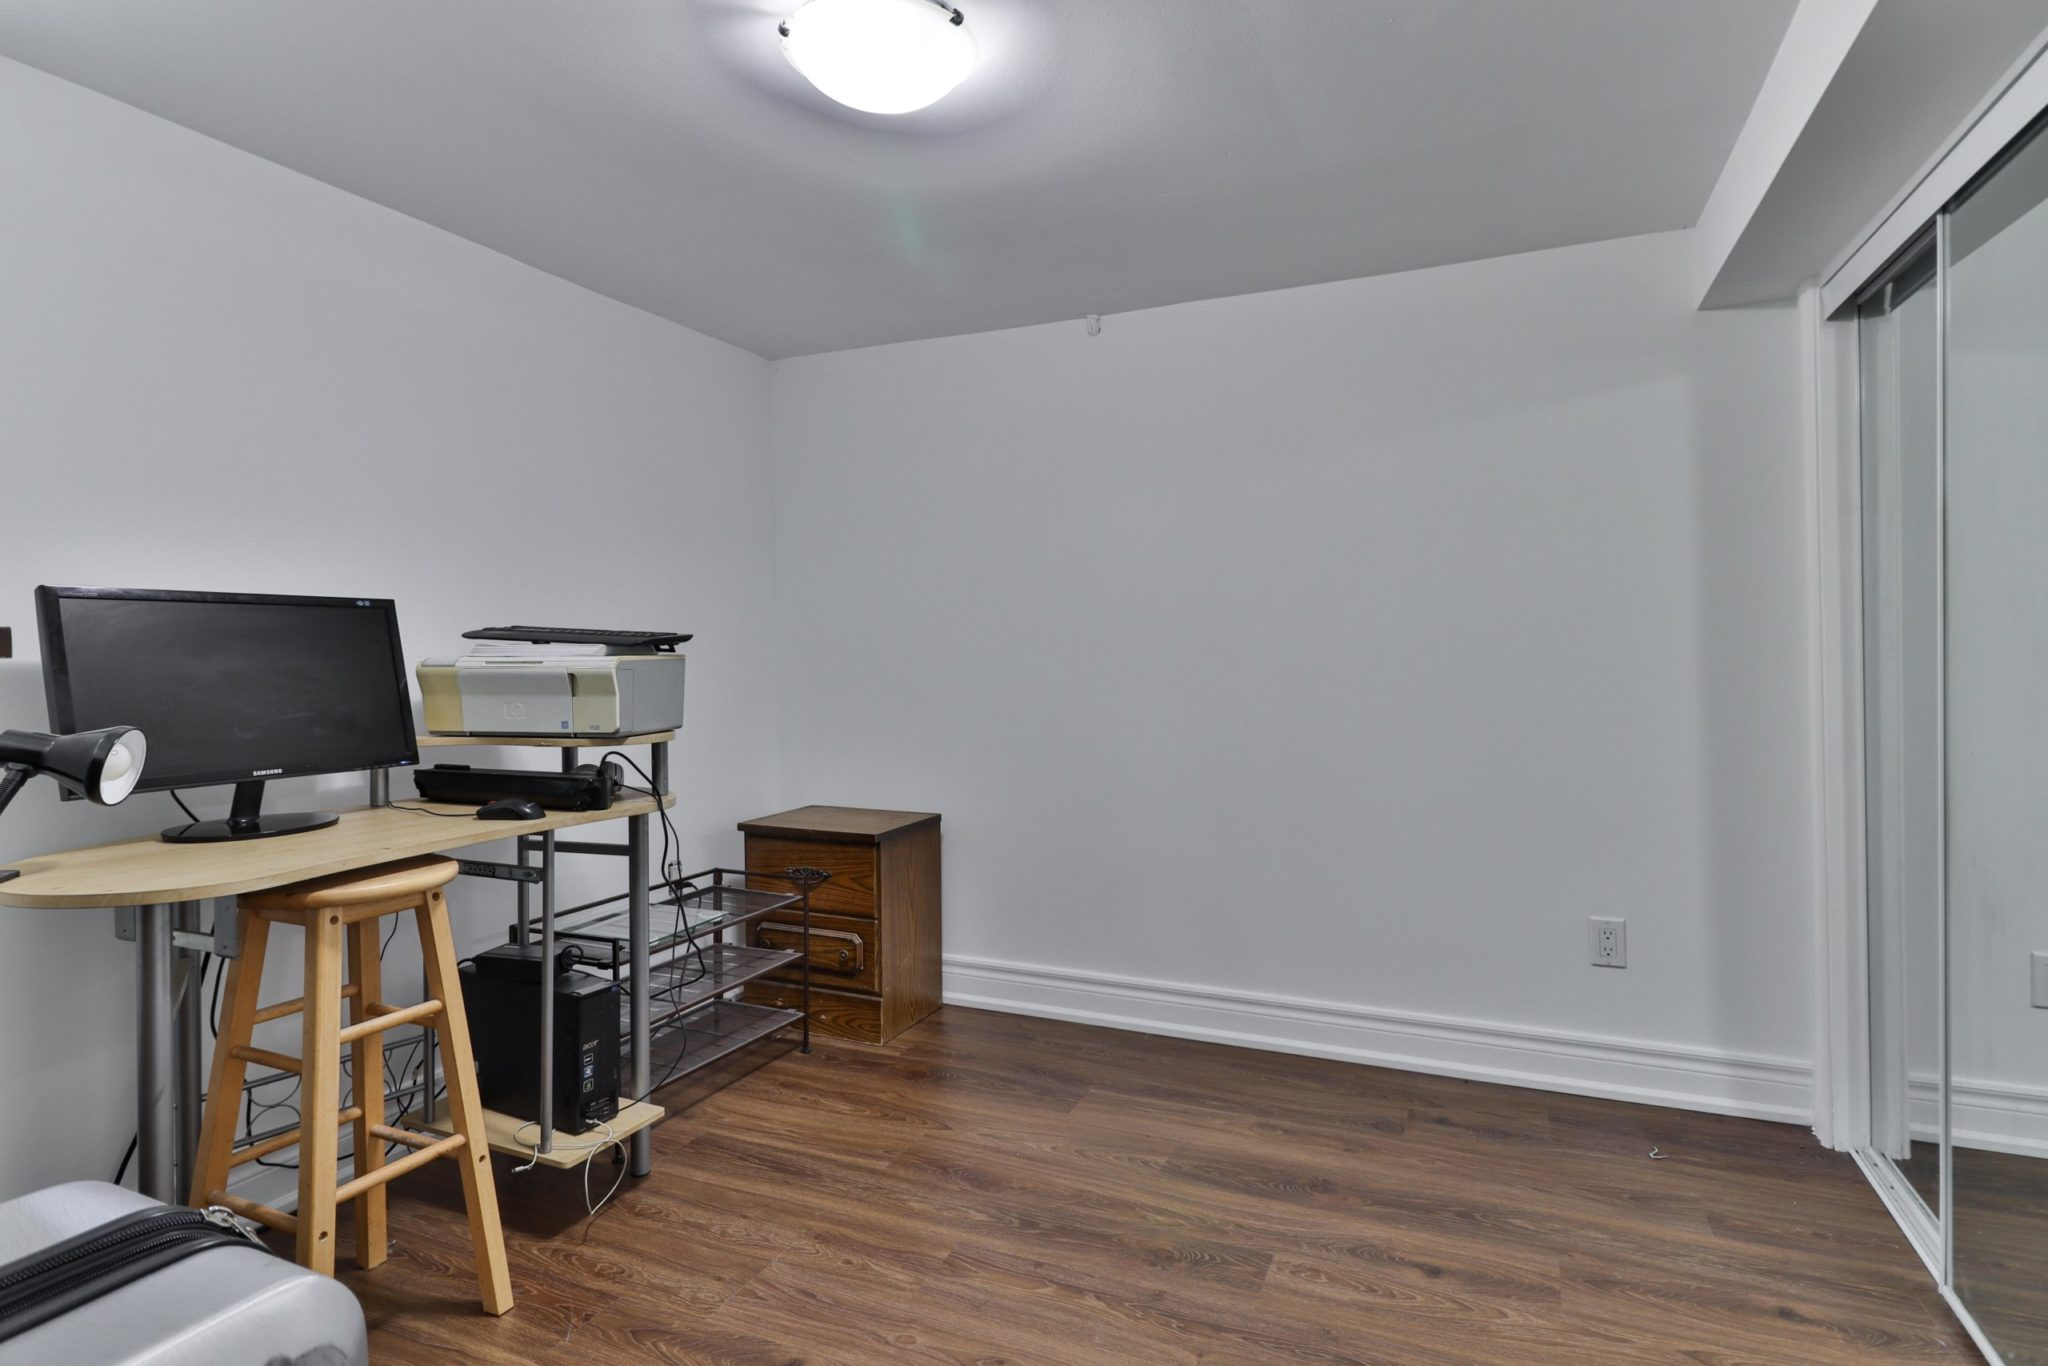 Basement bedroom being used as home office with computer, desk and chair.